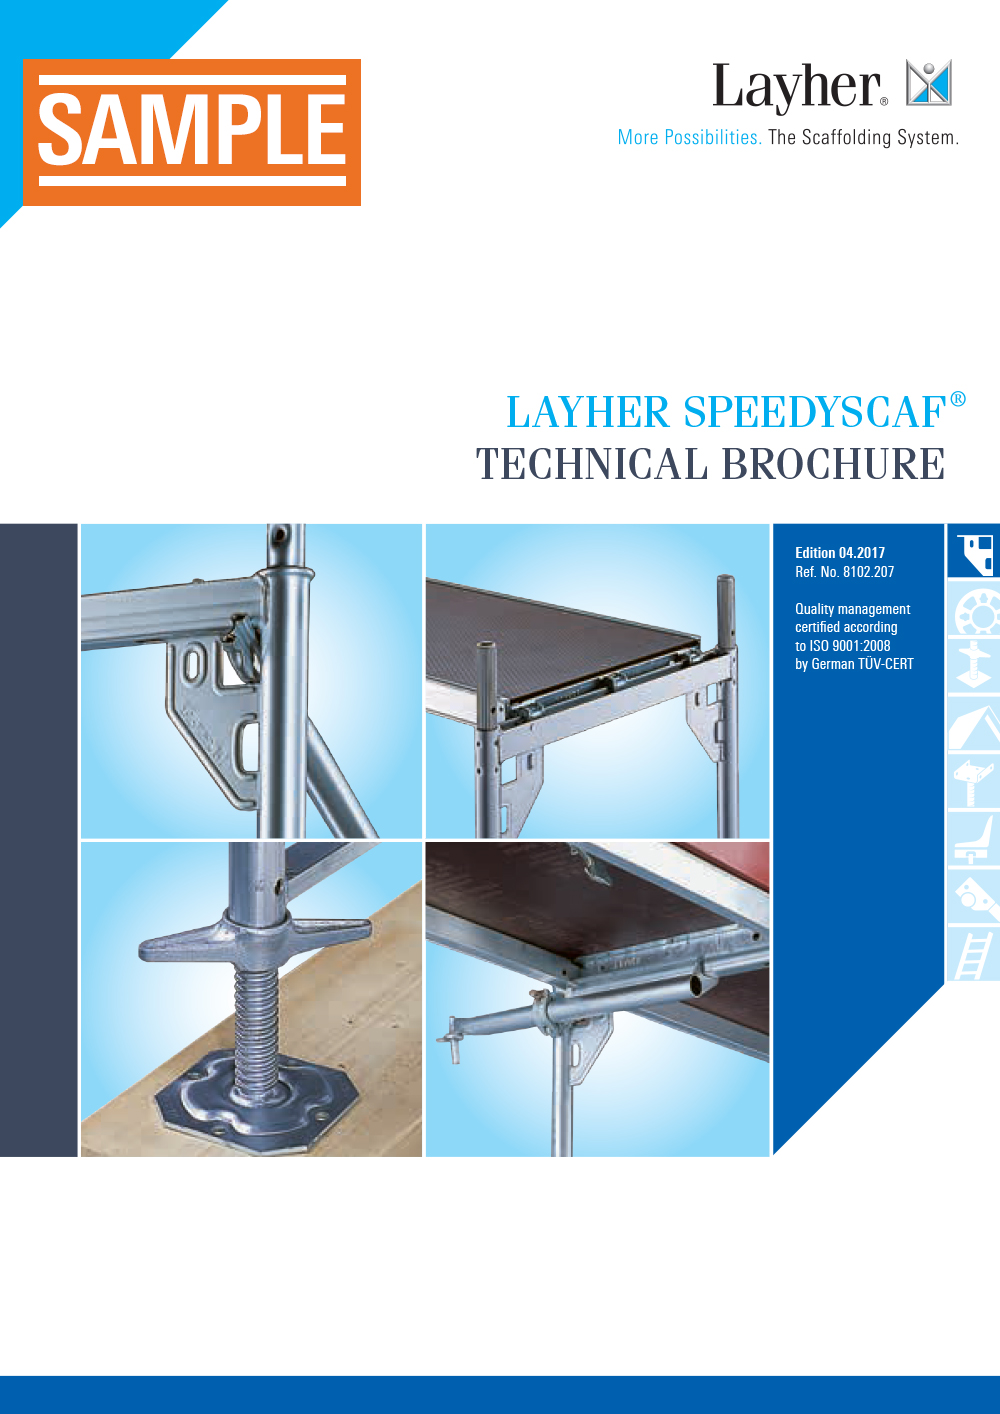 Layher SpeedyScaf technical brochure